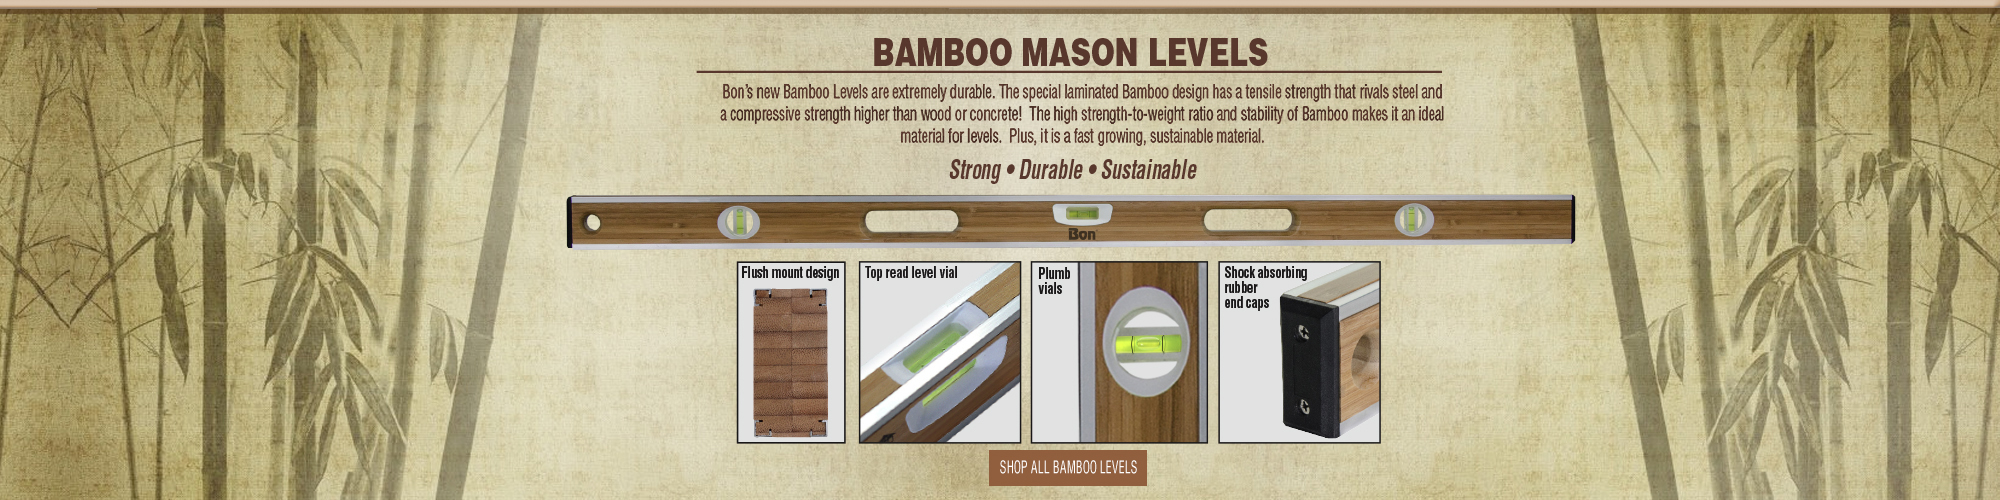 Bamboo Mason Levels by Bon